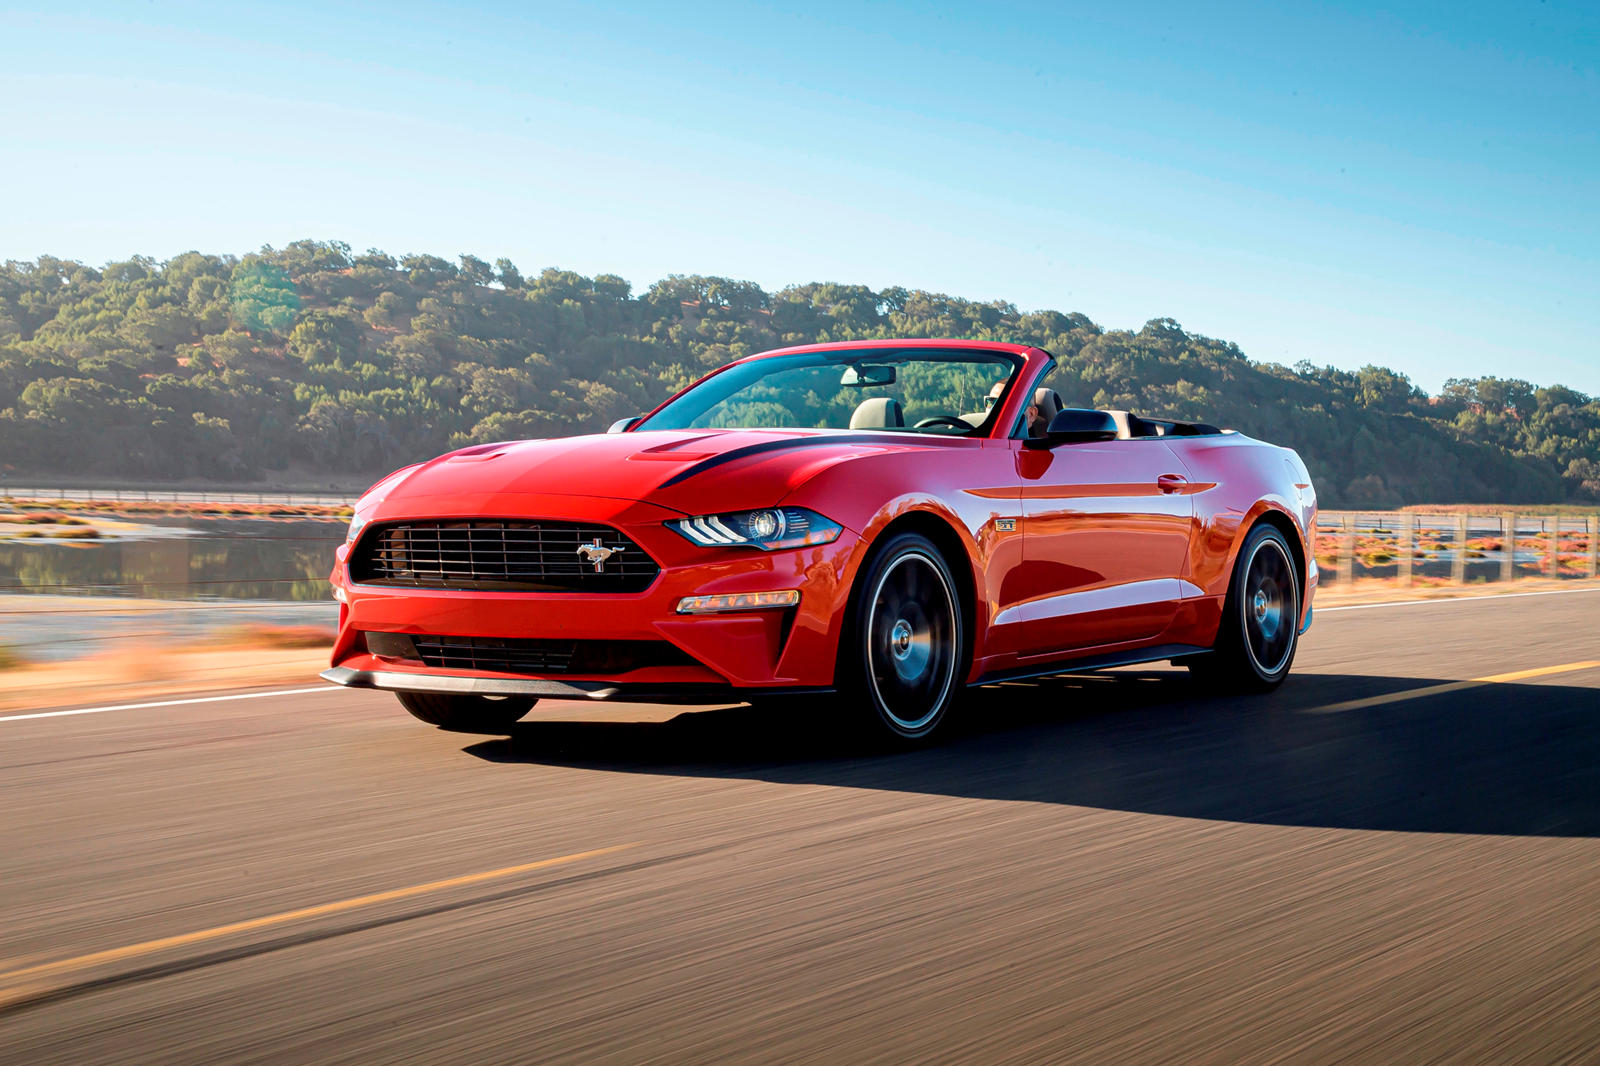 2020 Ford Mustang Convertible Review, Trims, Specs and ...